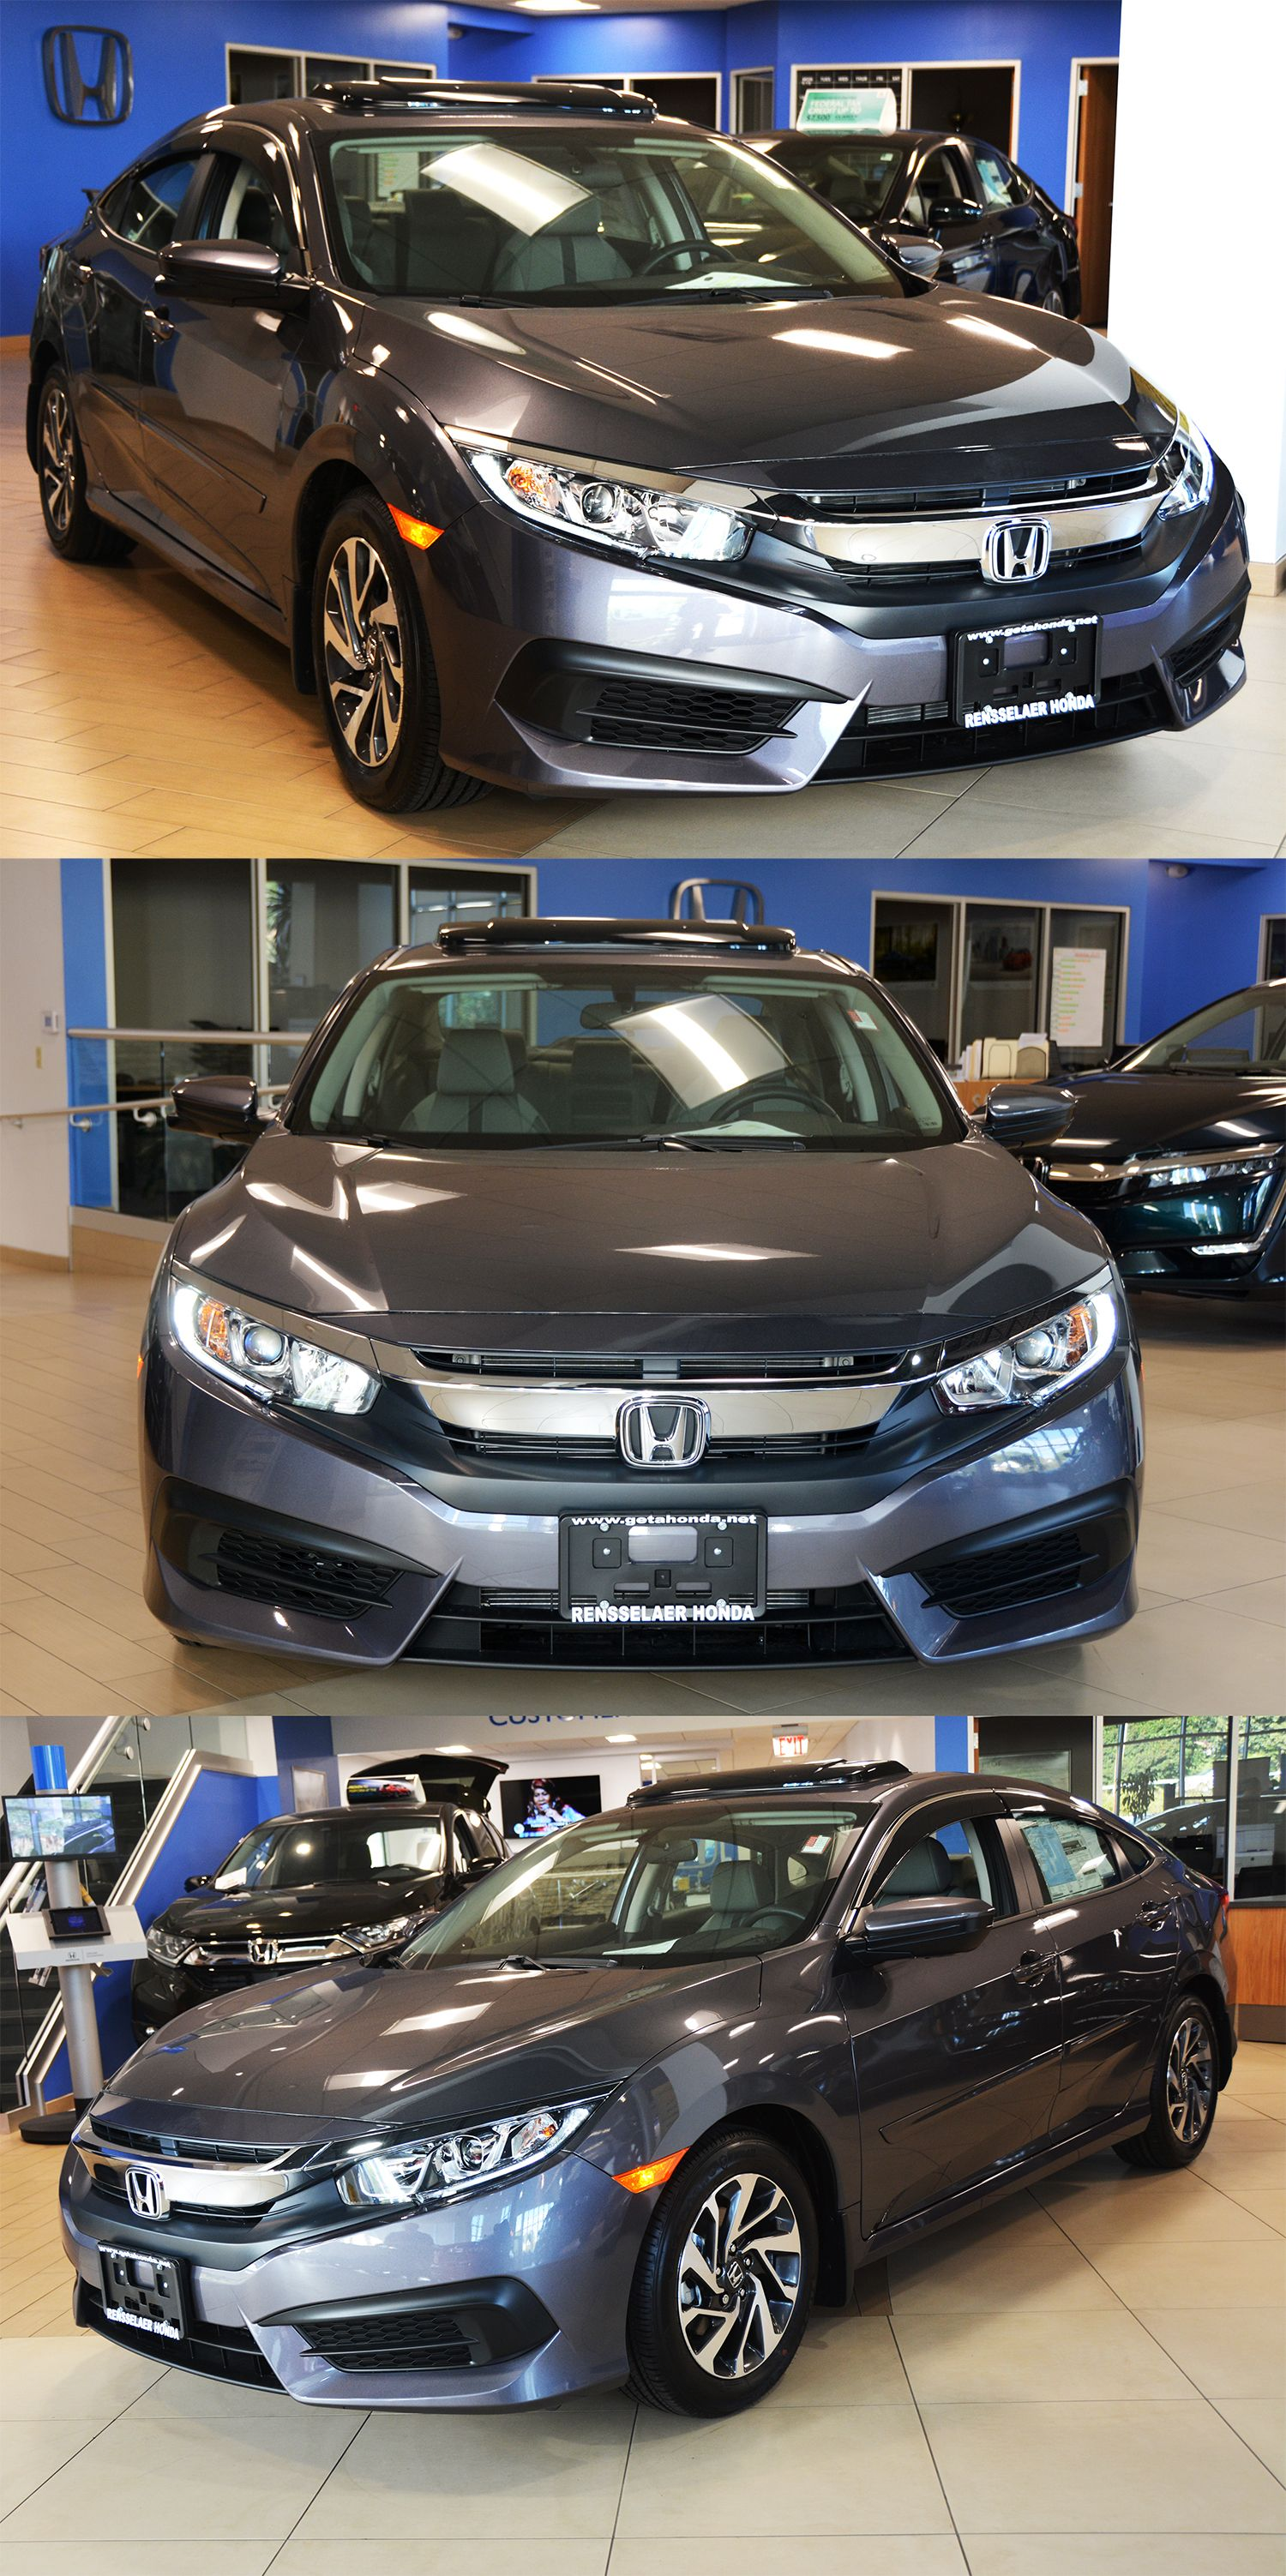 Stop In To Check Out This Civic We Just Put On The Floor We Added Some Essential Accessories Such Including Door Vi Honda Civic For Sale New Honda Honda Civic